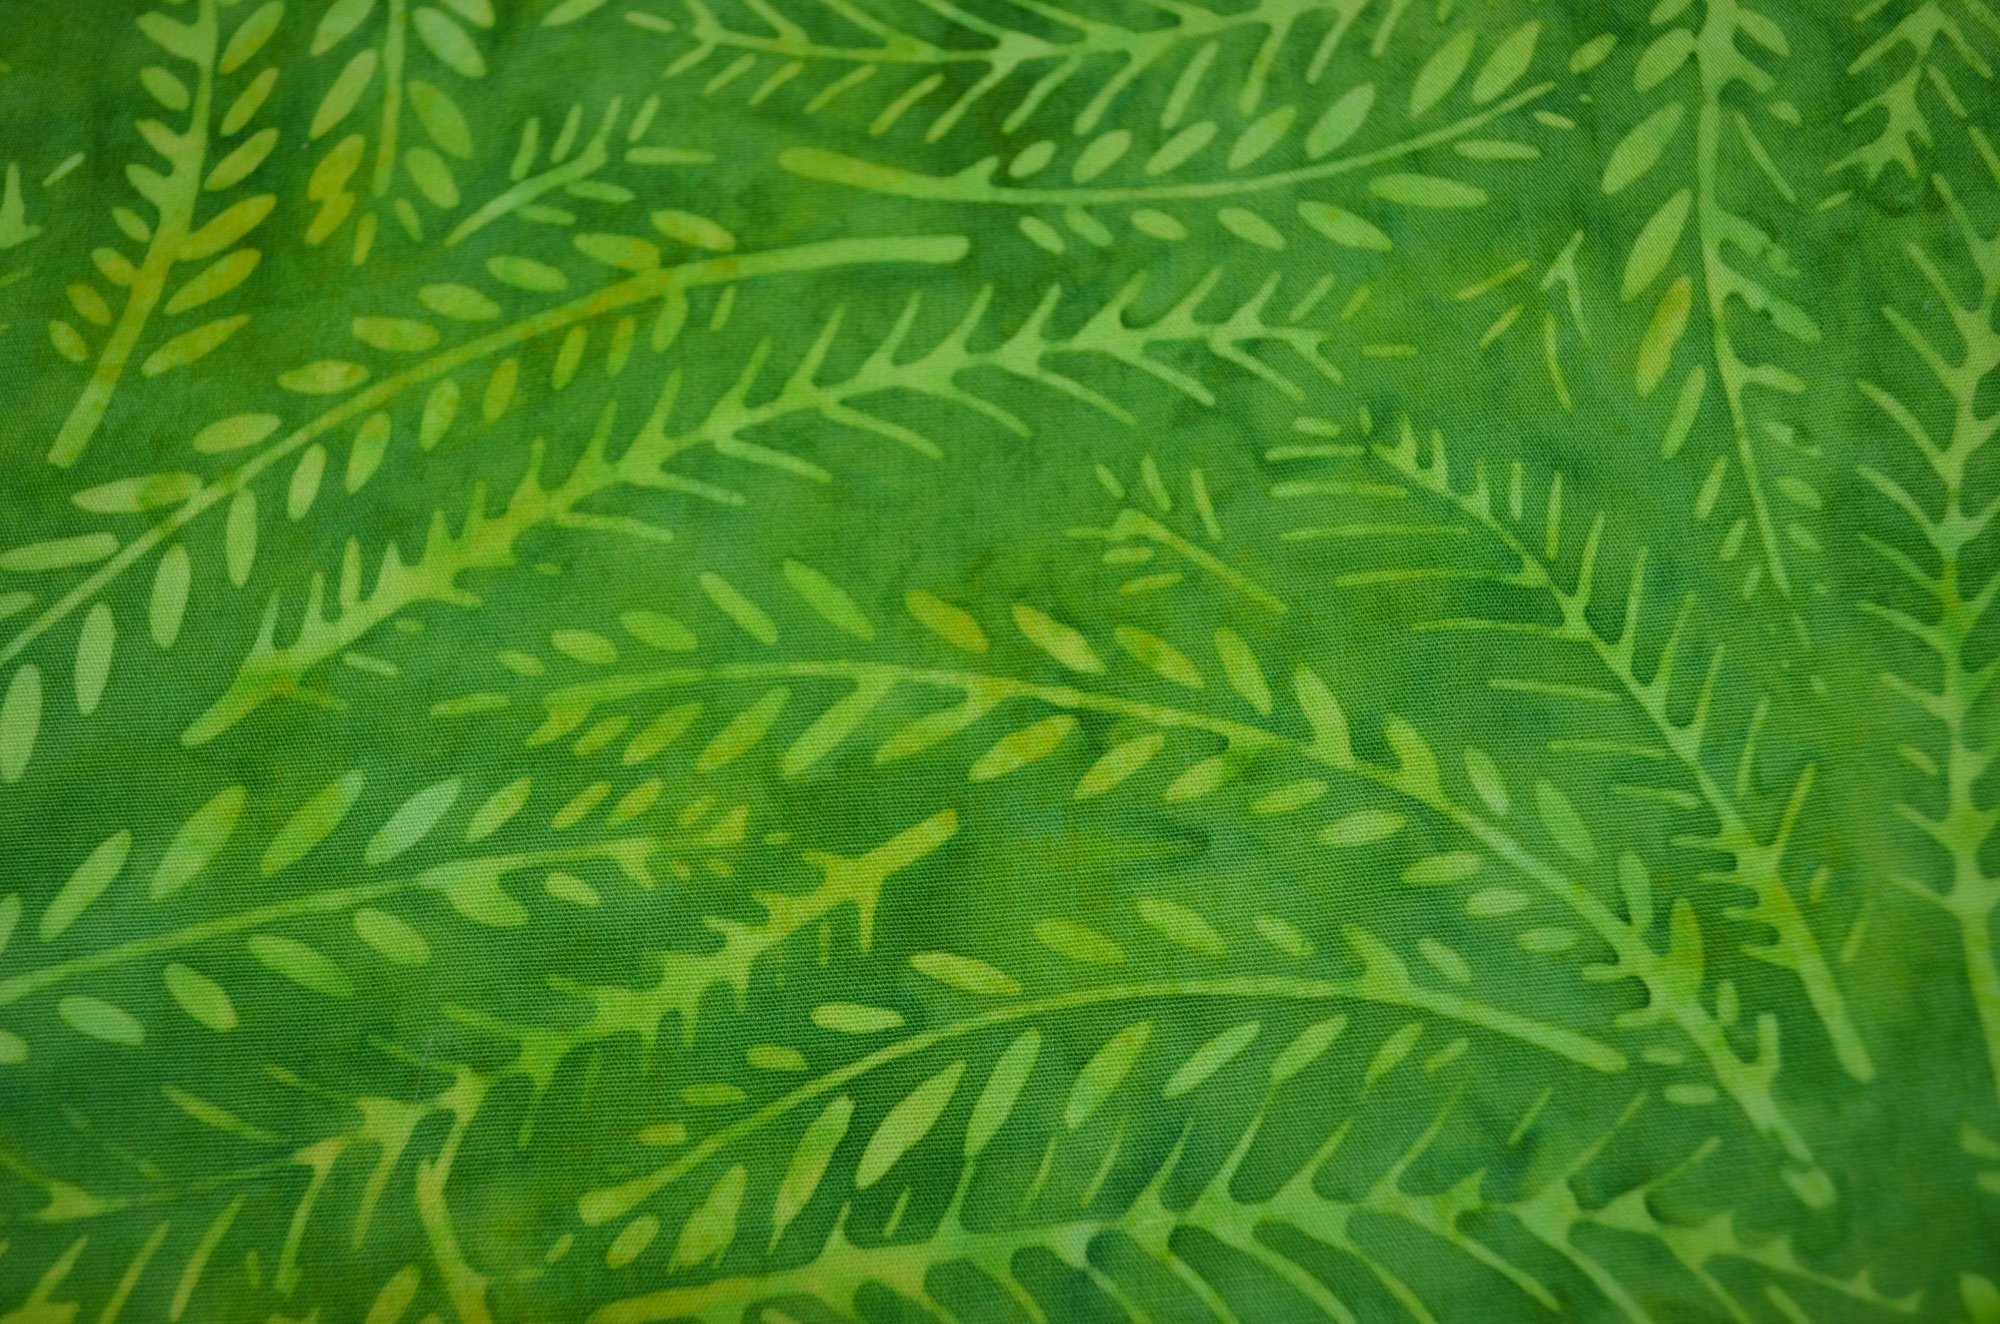 Batavian Batiks Green Fern Leaves